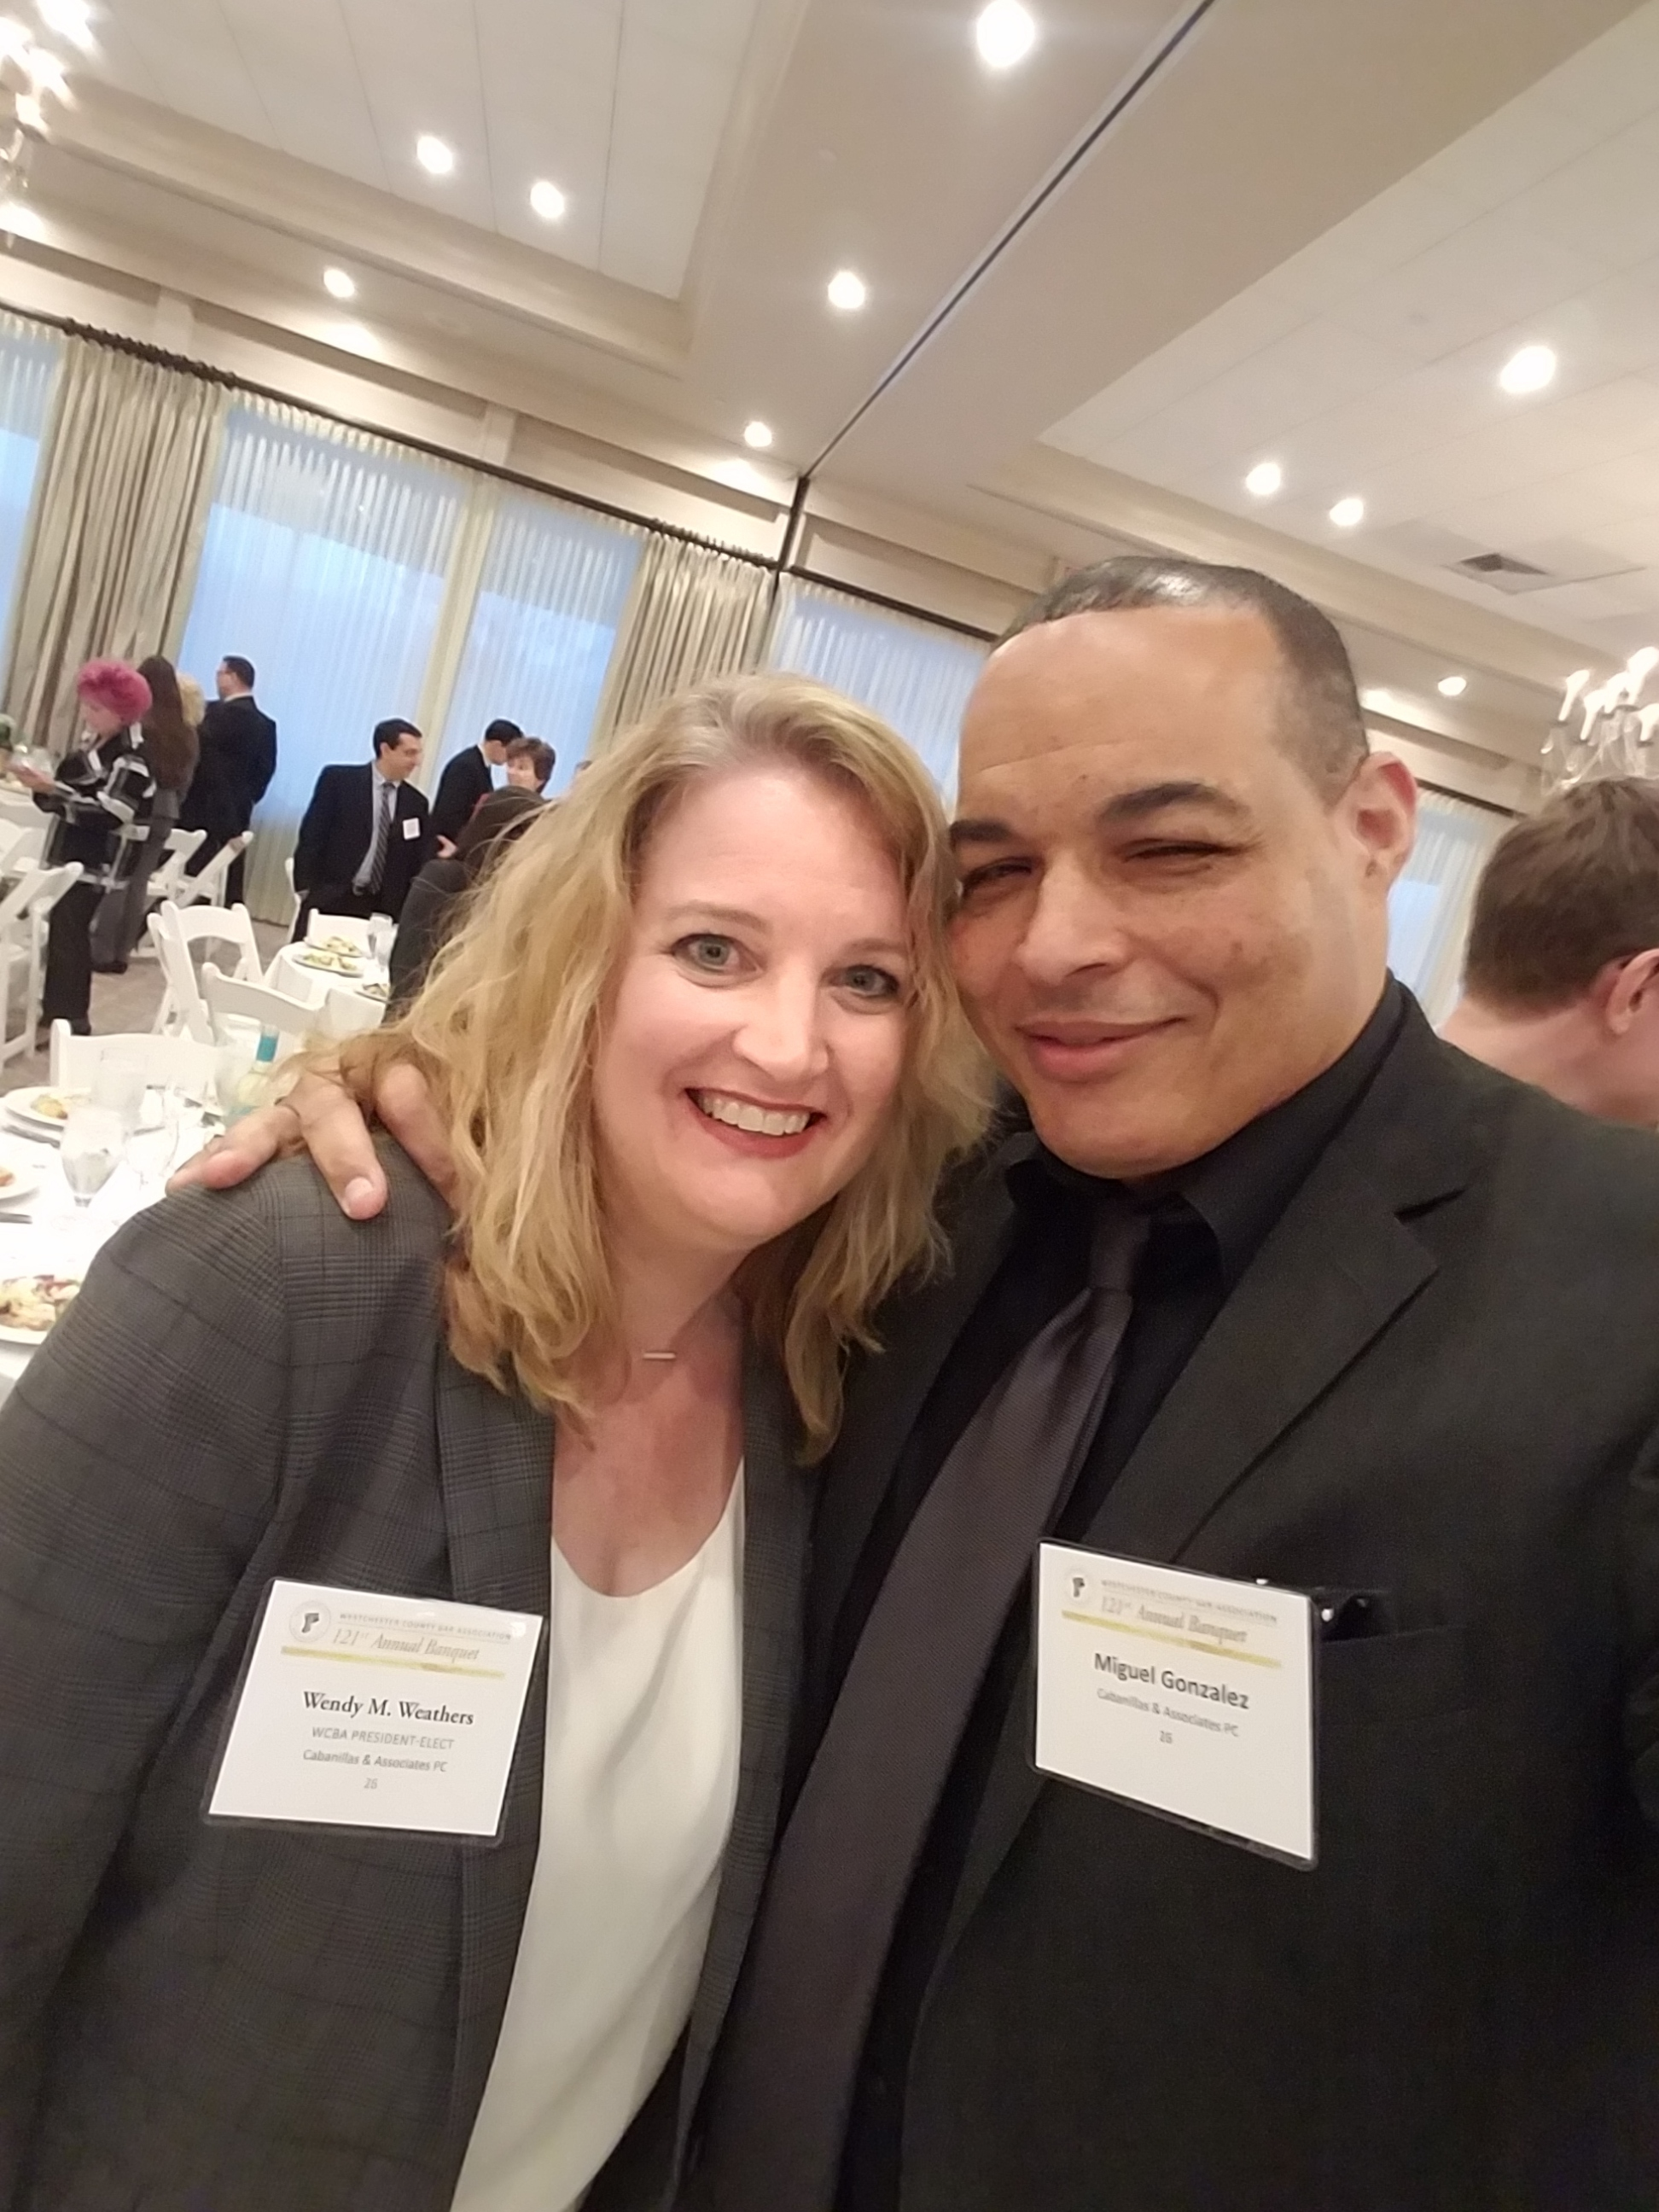 Wendy Weathers (C&A Senior Managing Attorney) & Miguel Gonzalez (C&A Managing Director)